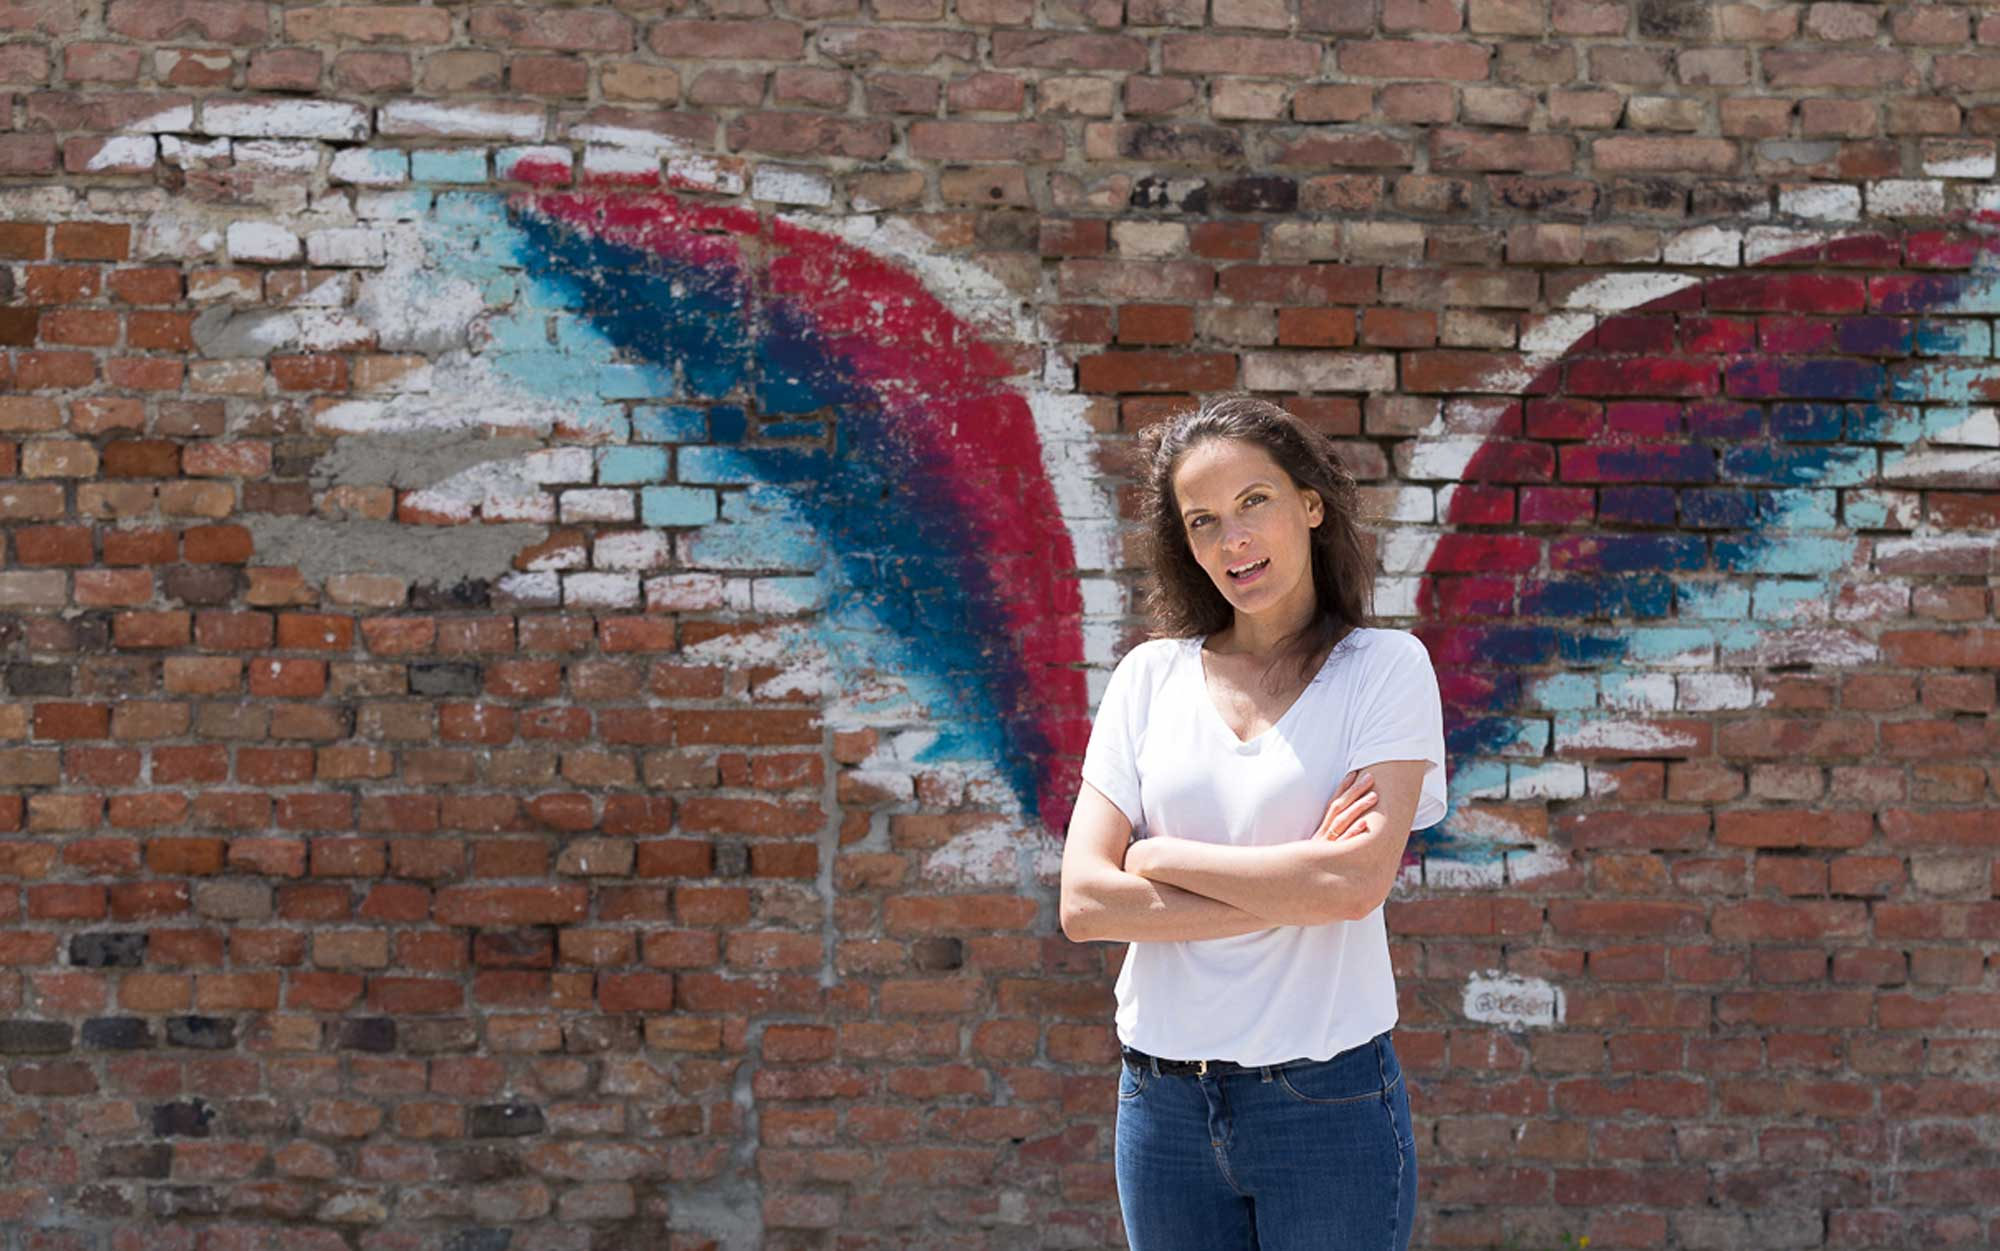 Gabriella grafitti wings